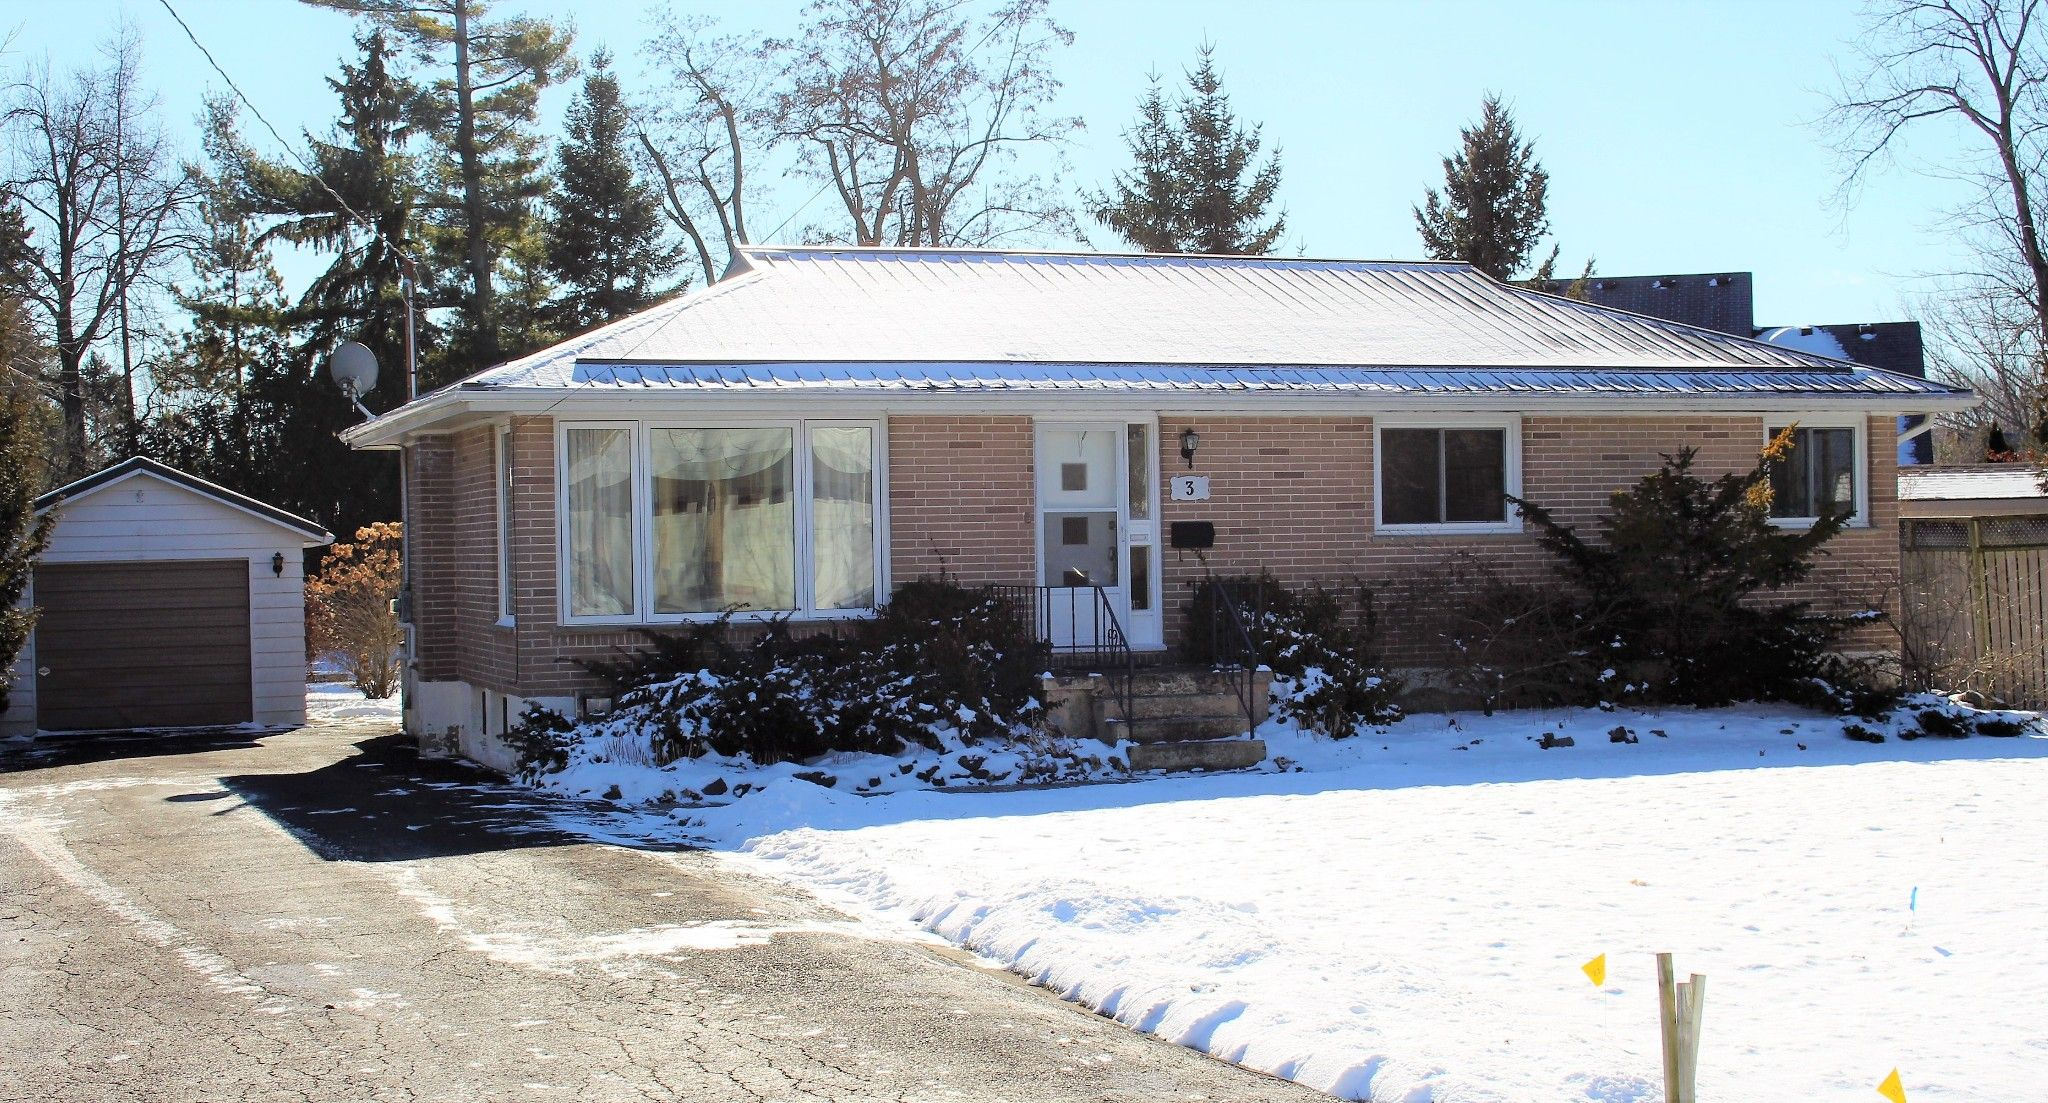 Main Photo: 3 Orchanrd Avenue in Cobourg: House for sale : MLS®# 40061204